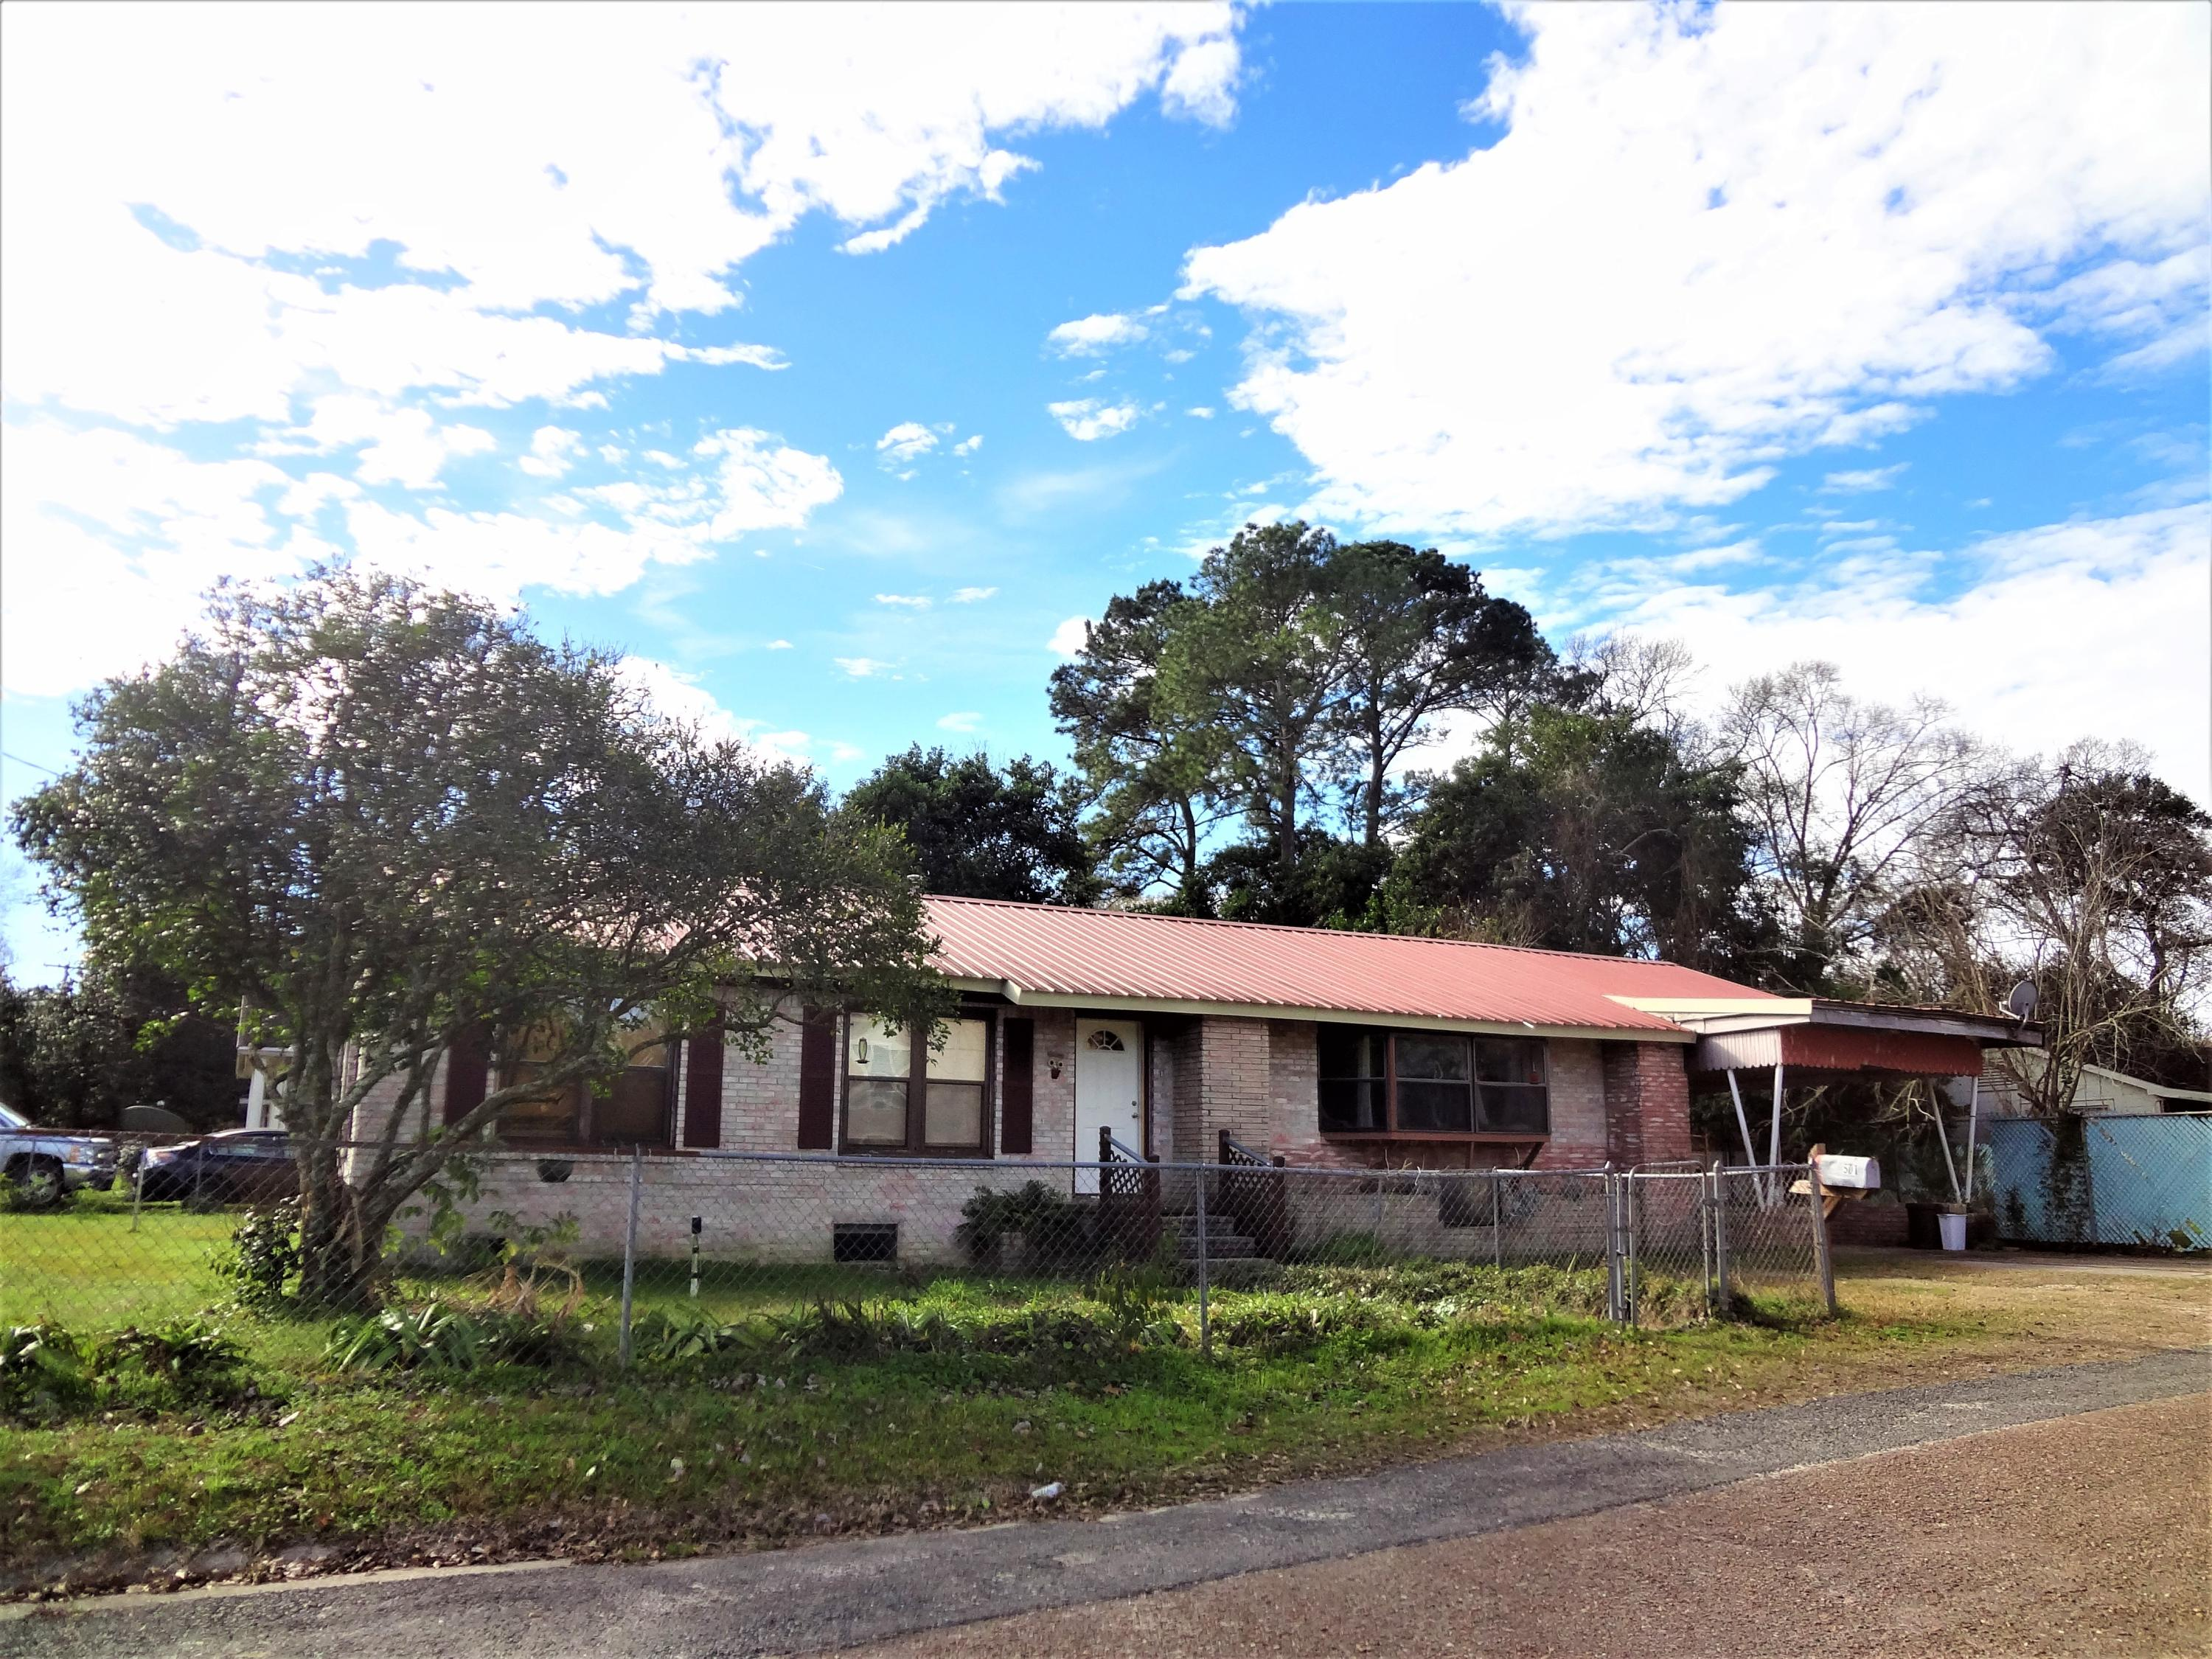 DeRidder home for sale, 501 Brown St, DeRidder LA - $88,000